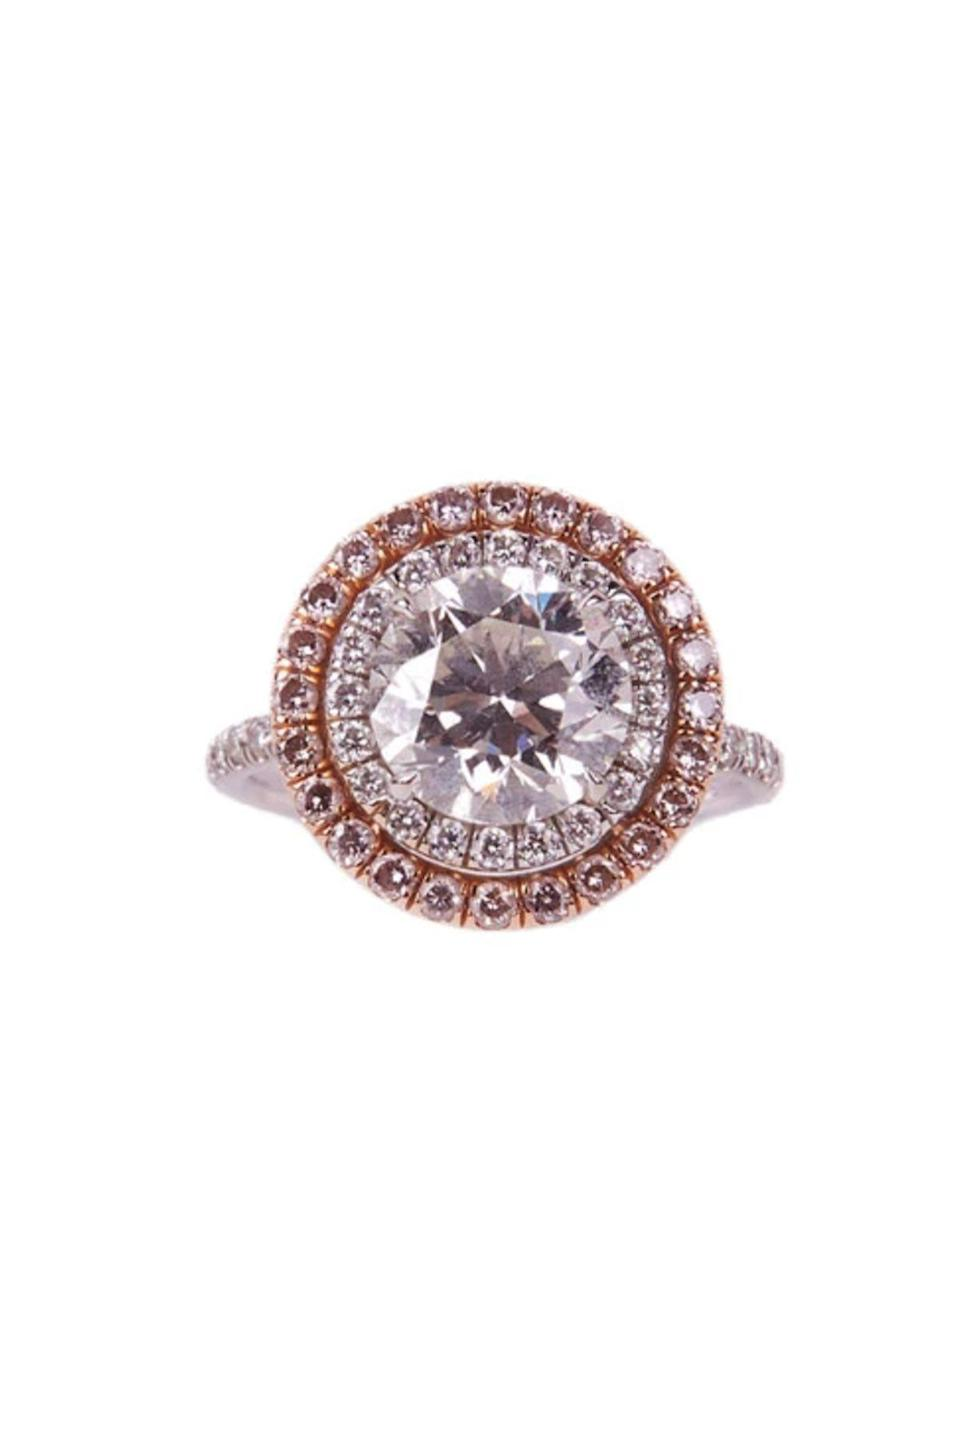 """<p><strong>María José</strong></p><p>mariajosejewelry.com</p><p><strong>$45000.00</strong></p><p><a href=""""https://mariajosejewelry.com/collections/diamonds/products/diamond-double-halo-ring"""" rel=""""nofollow noopener"""" target=""""_blank"""" data-ylk=""""slk:Shop Now"""" class=""""link rapid-noclick-resp"""">Shop Now</a></p><p>White diamonds are the classic choice for engagement rings, but a double halo of pink diamonds feels extra special. </p>"""